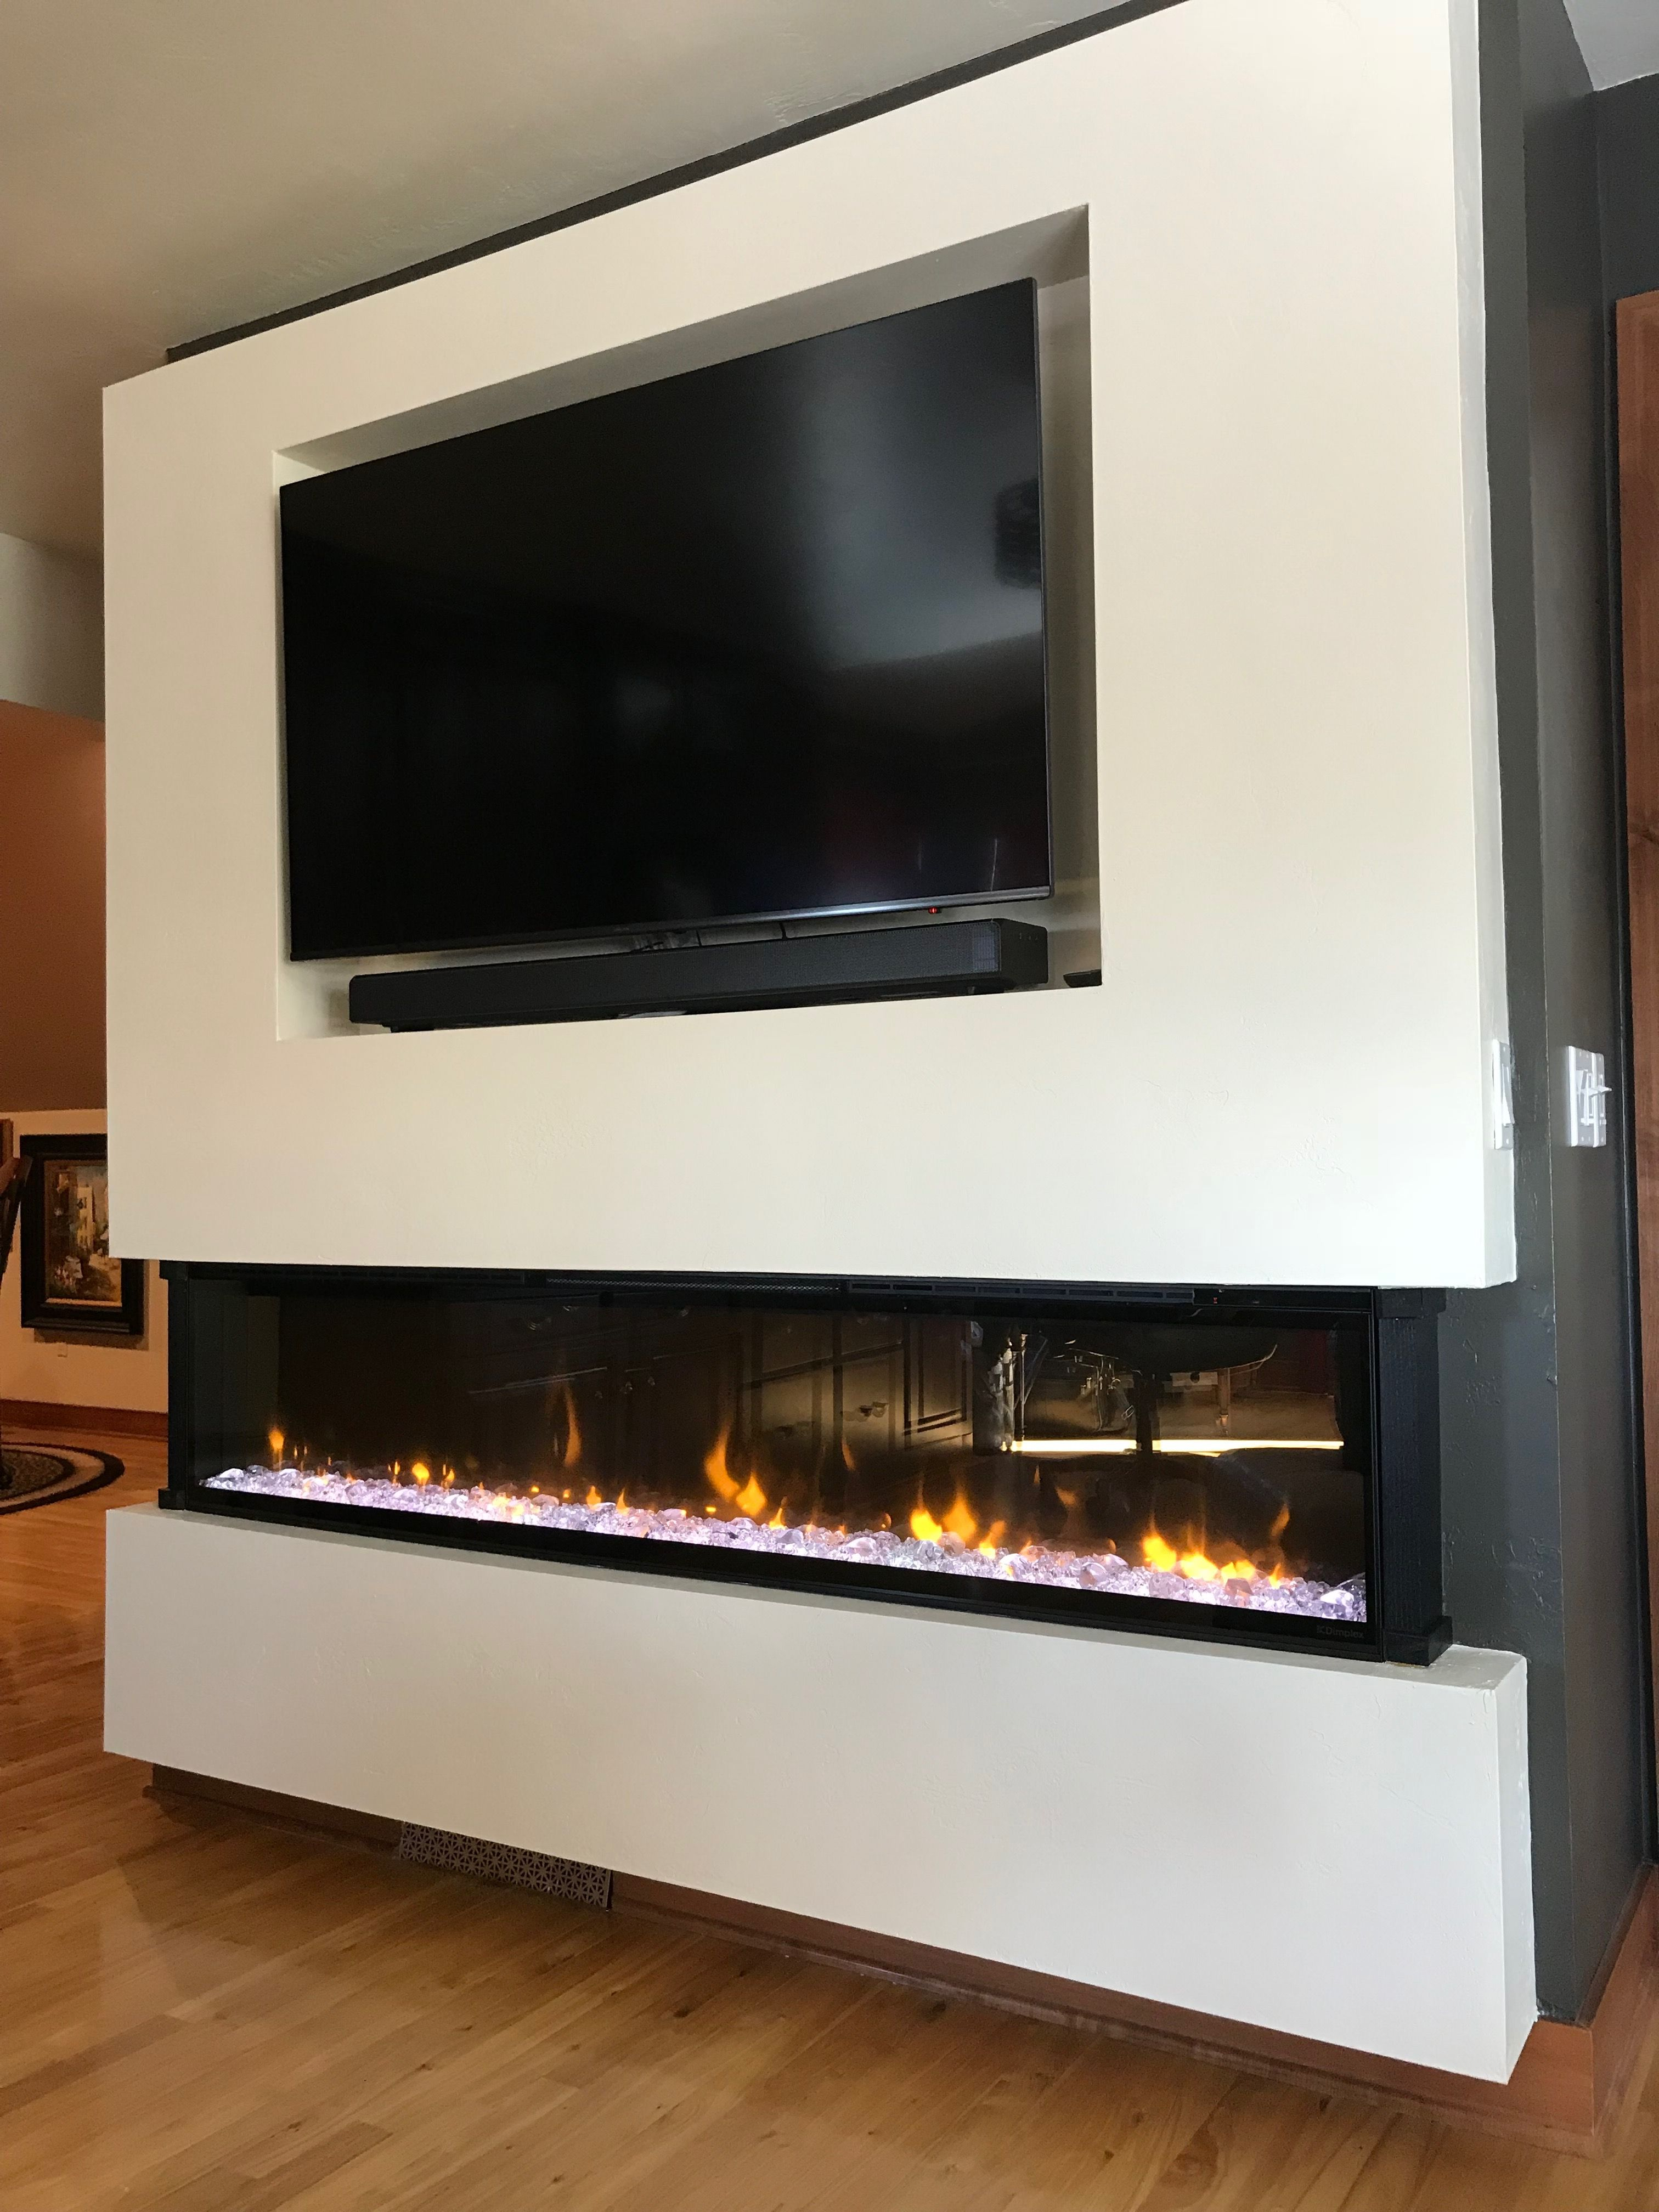 Diy Project Completed Dimplex Xlf74 Linear Electric Fireplace